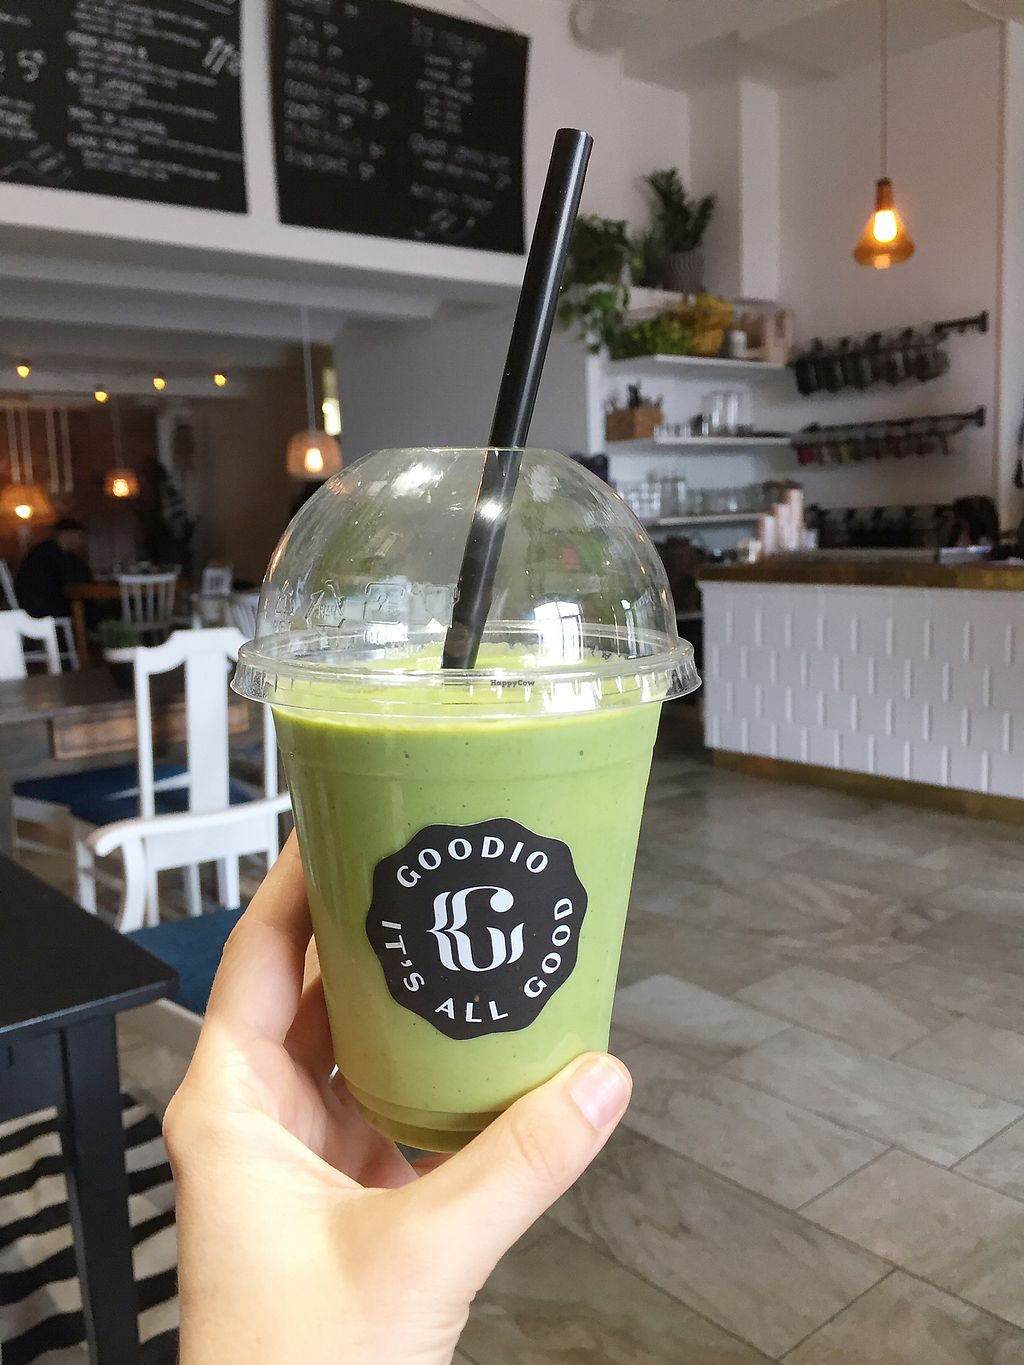 """Photo of Goodio Cafe  by <a href=""""/members/profile/Evgenia"""">Evgenia</a> <br/>green smoothie  <br/> September 4, 2017  - <a href='/contact/abuse/image/100184/300723'>Report</a>"""